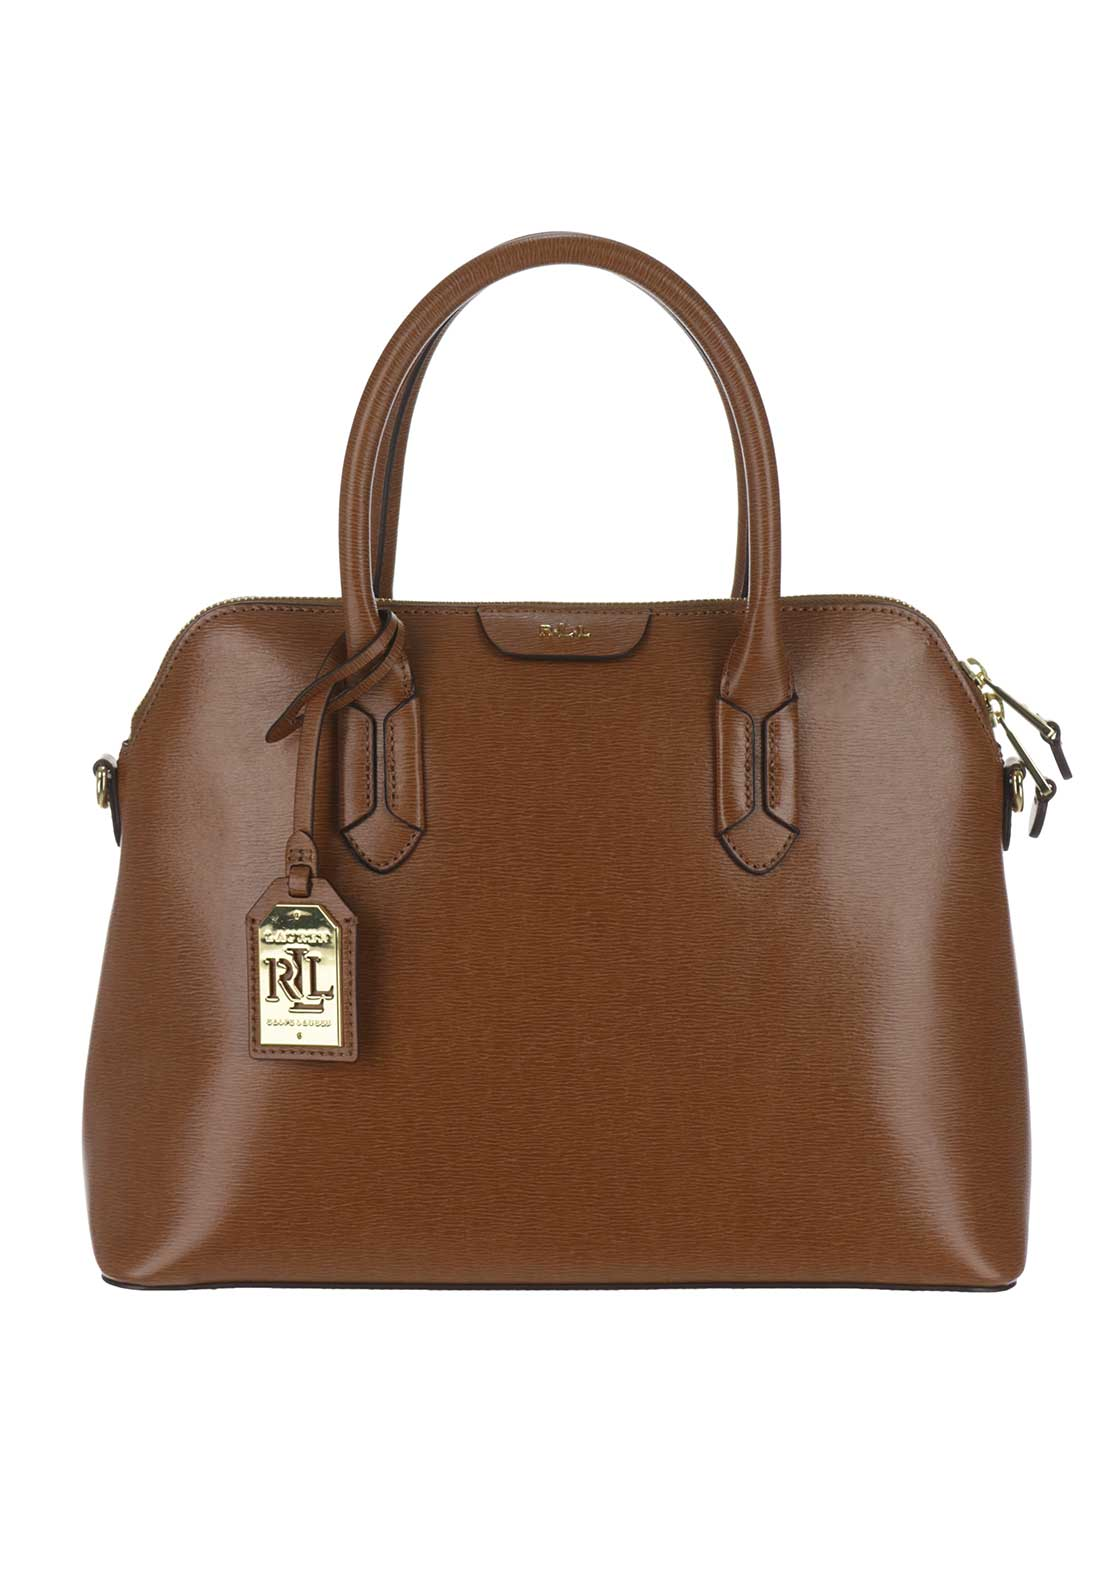 Ralph Lauren Tate Leather Dome Tote Bag, Tan